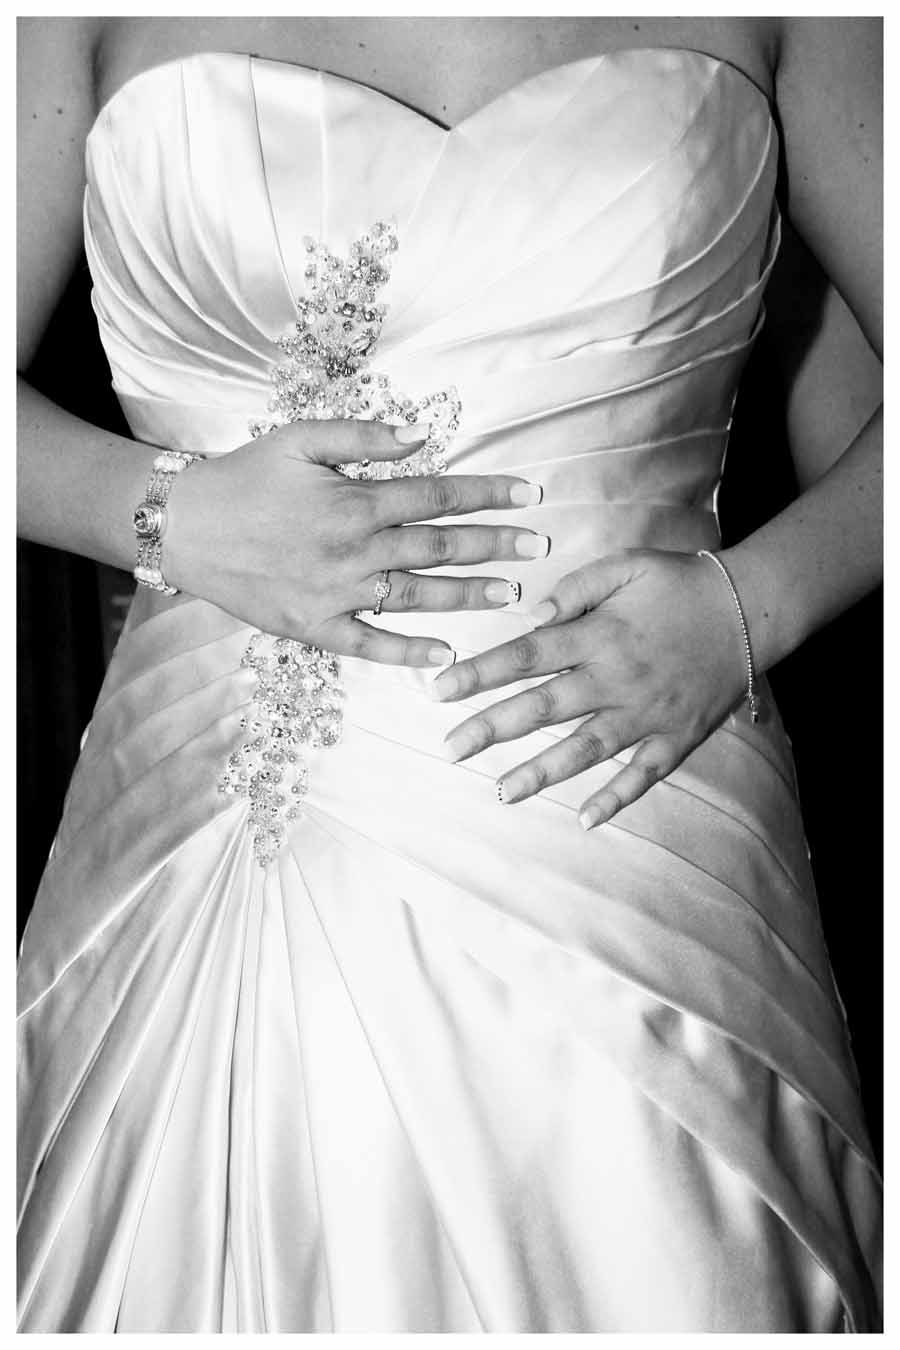 BRIDE Photos by Simeon Thaw copyright 2014 (64).jpg